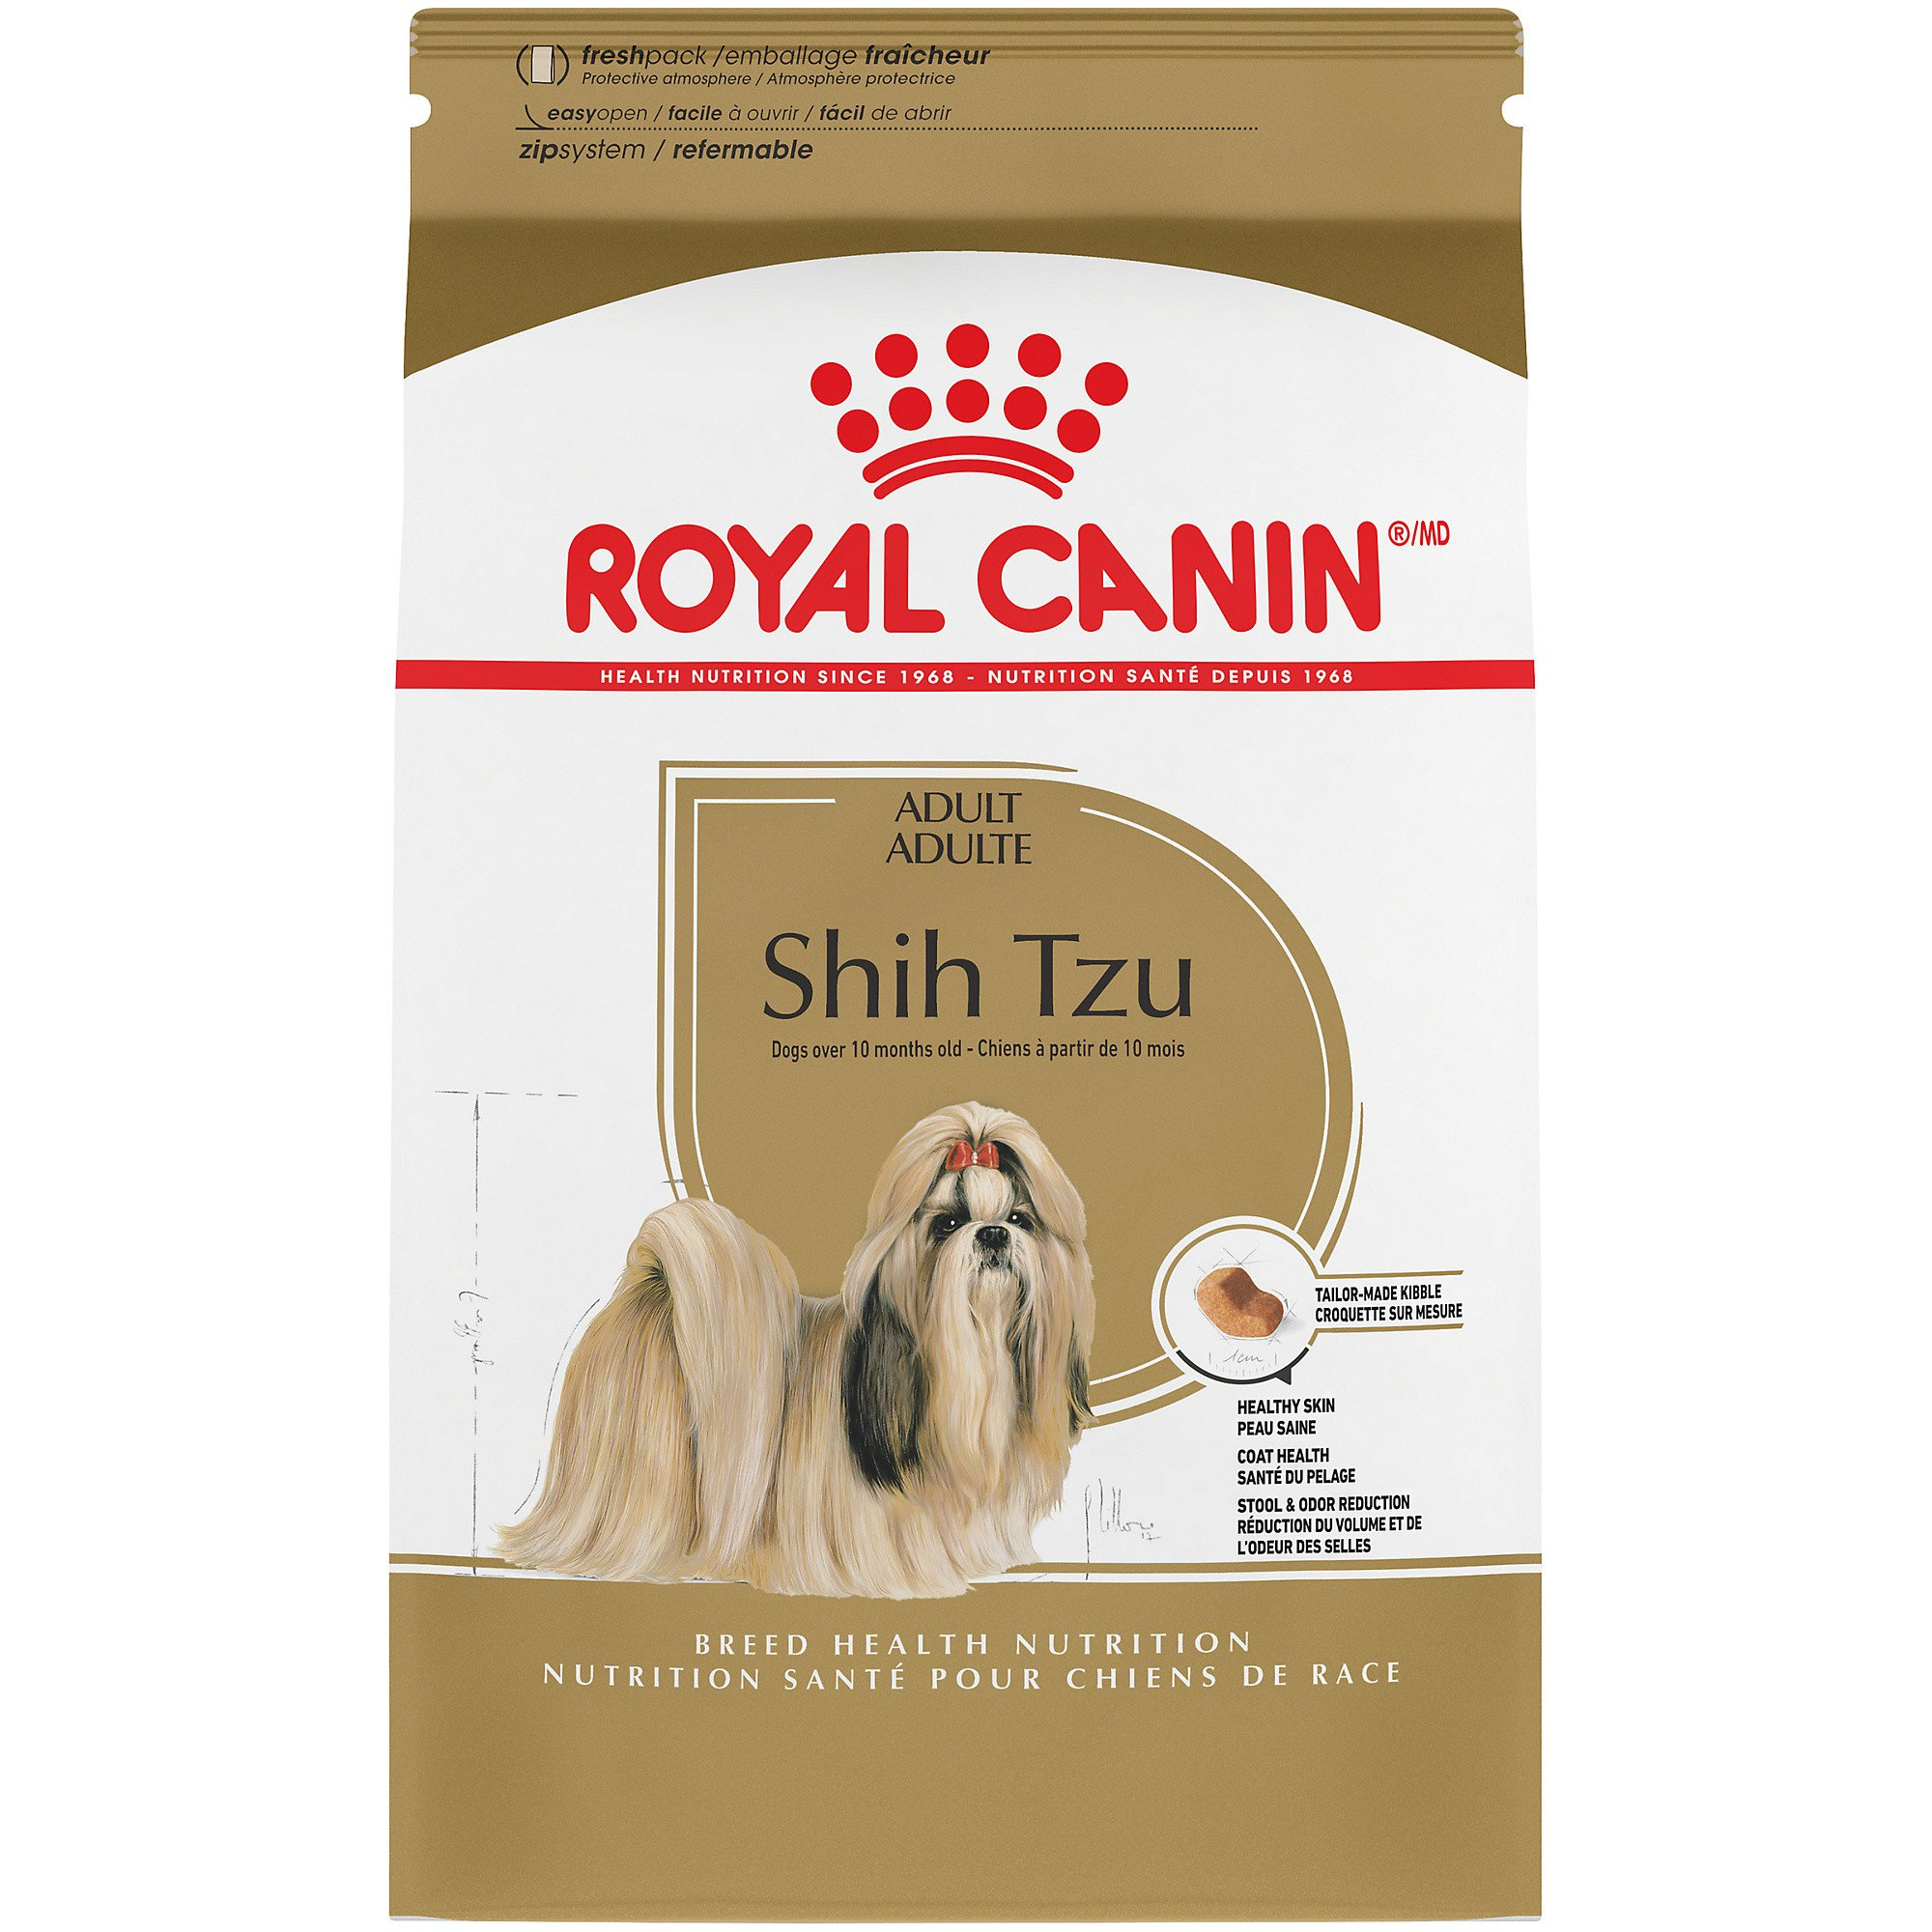 Royal Canin Shih Tzu Dry Dog Food